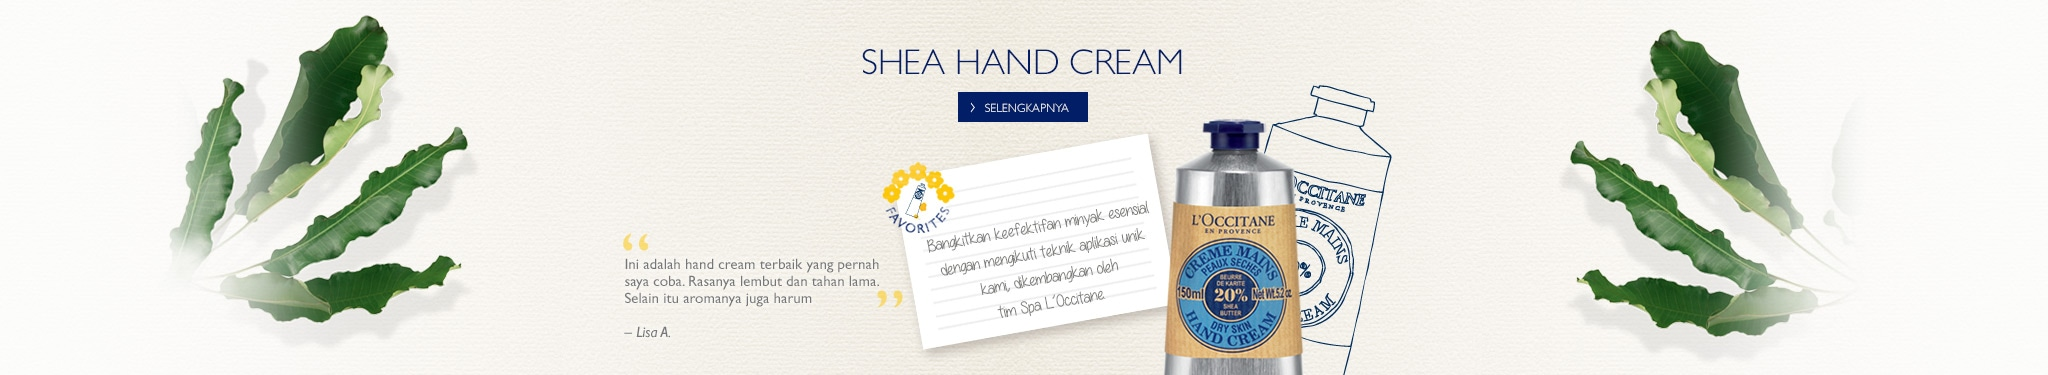 Best Seller Hand Cream